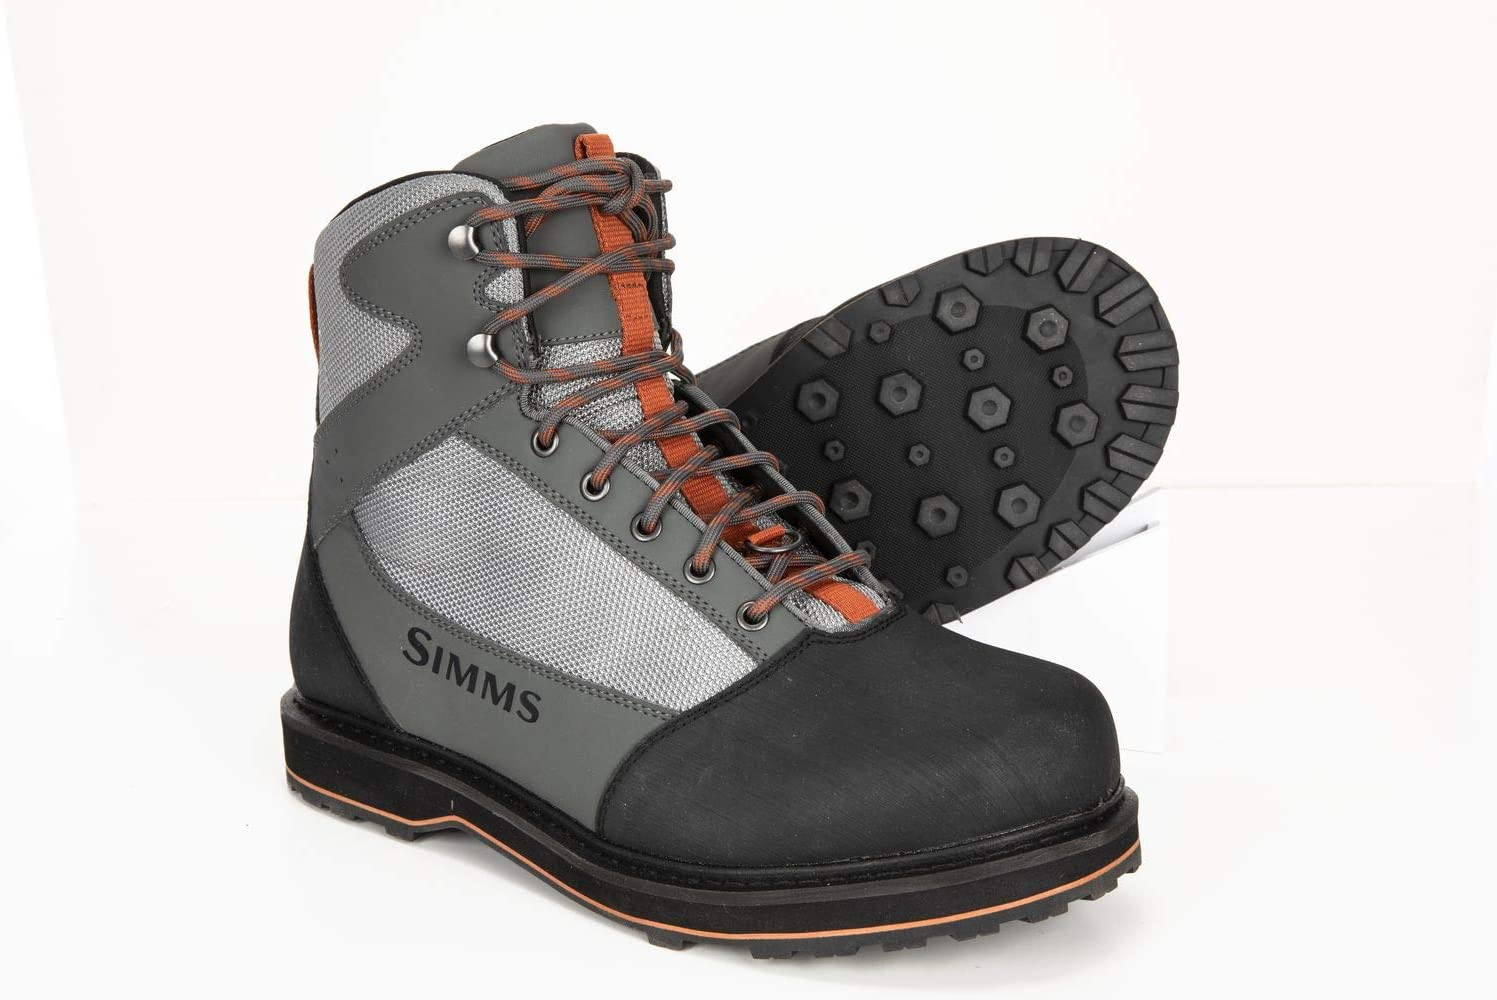 Simms Saltwater Wading boots